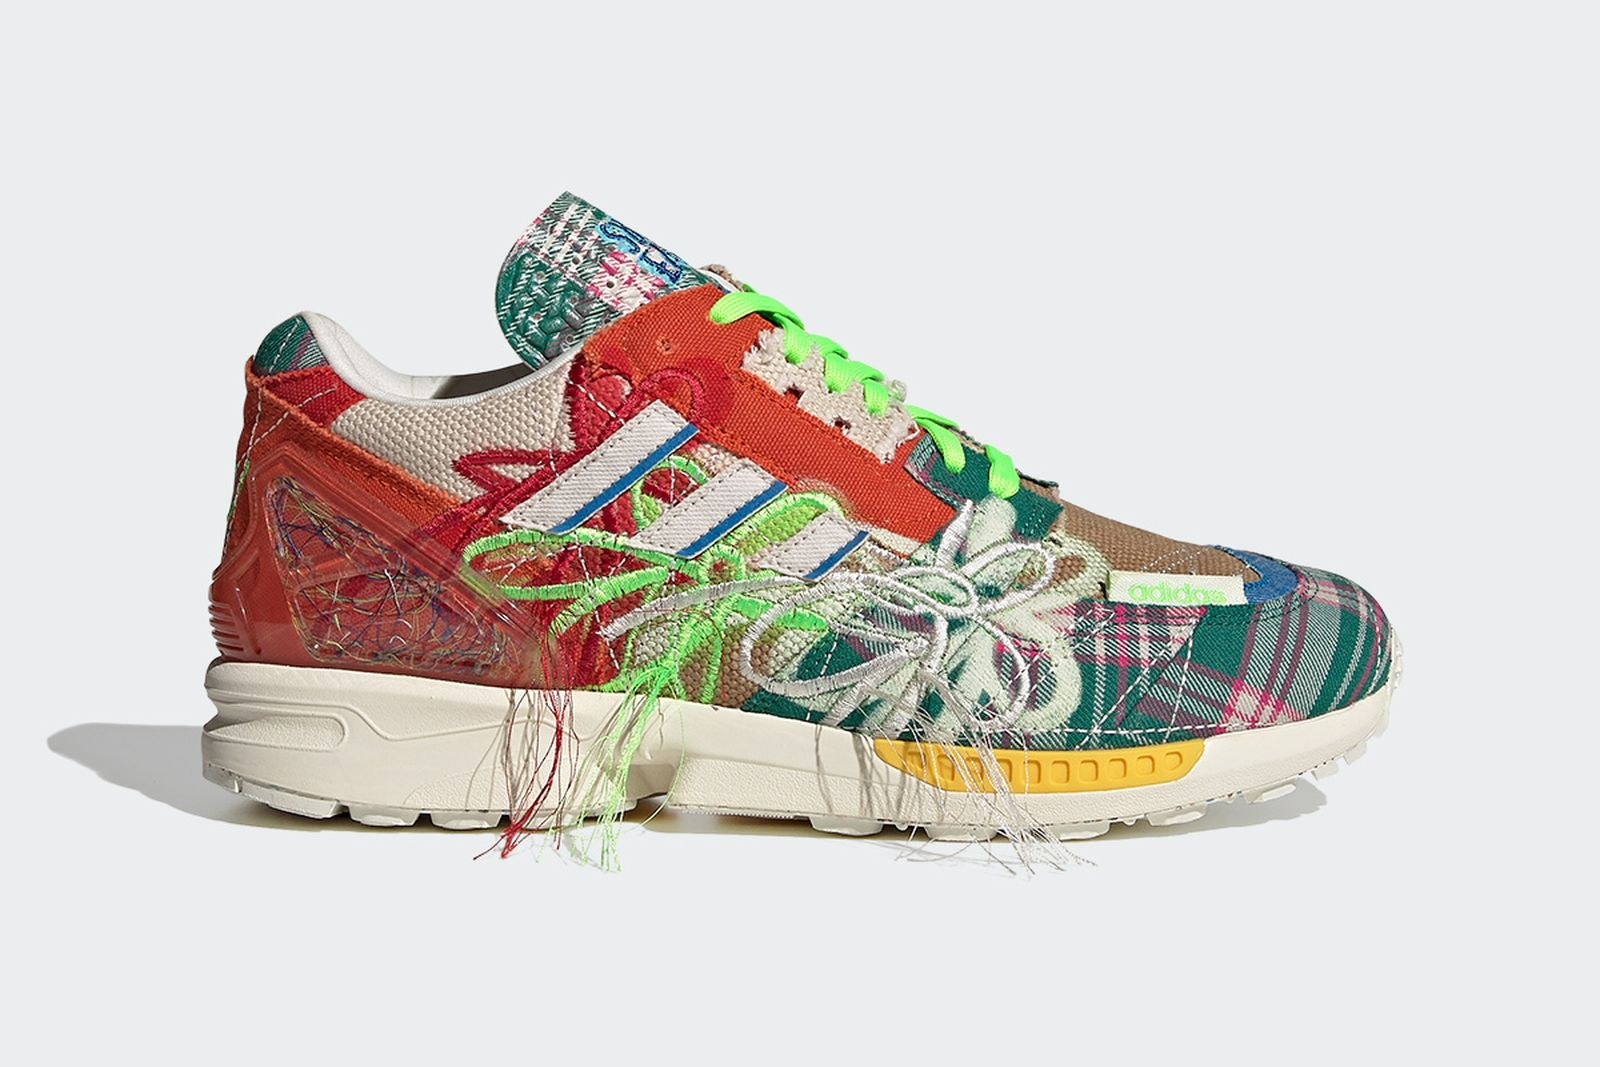 sean-wotherspoon-adidas-zx-8000-interview-05